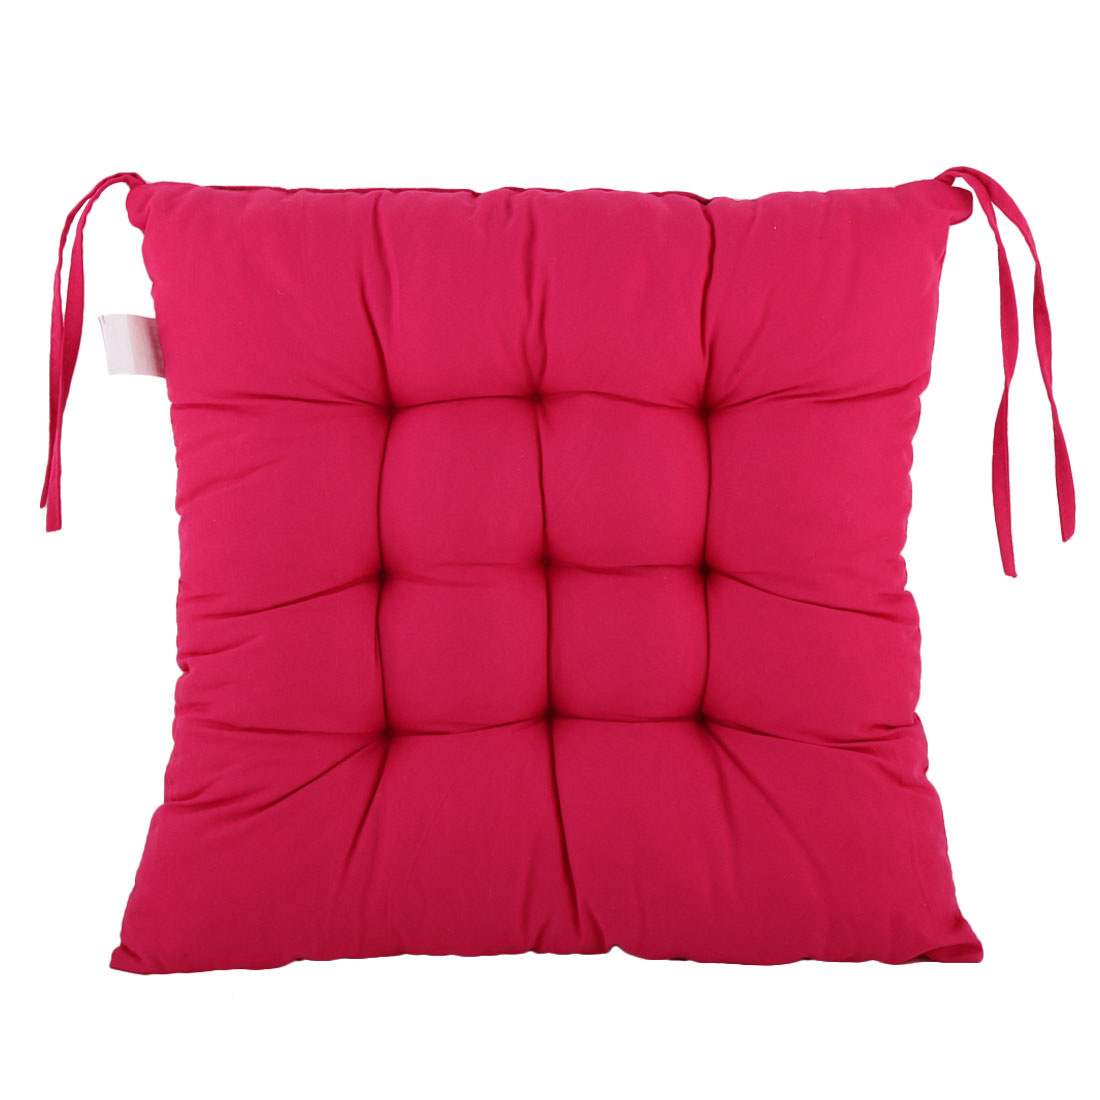 Office Cotton Blends Chair Seat Cushion for Back Tired Sciatica Relax Fuchsia